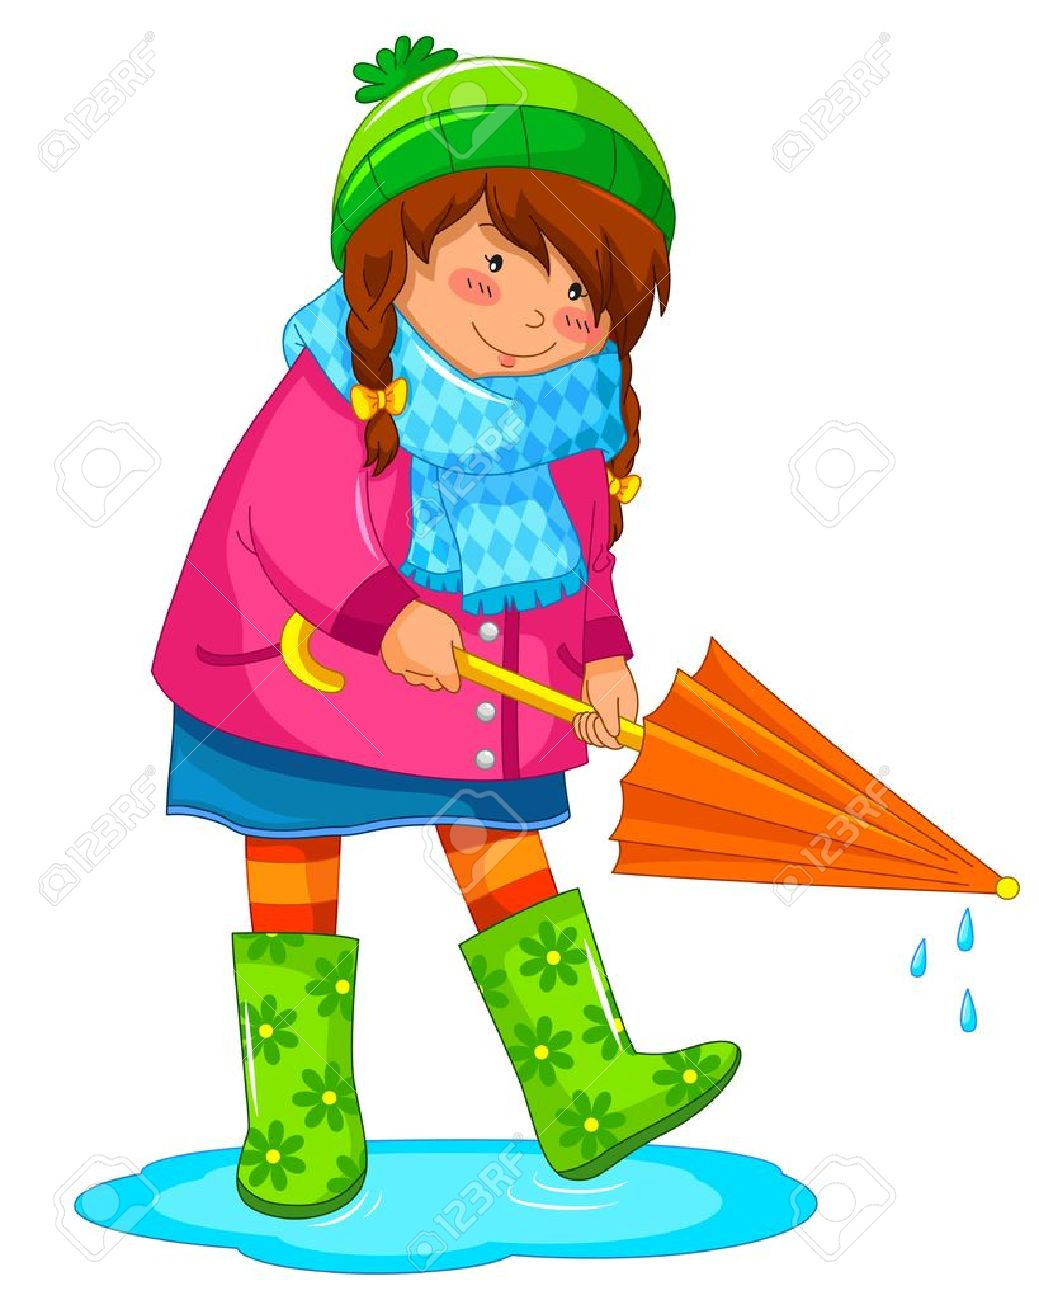 1039x1300 Rain Clipart Rainy Season Clothes